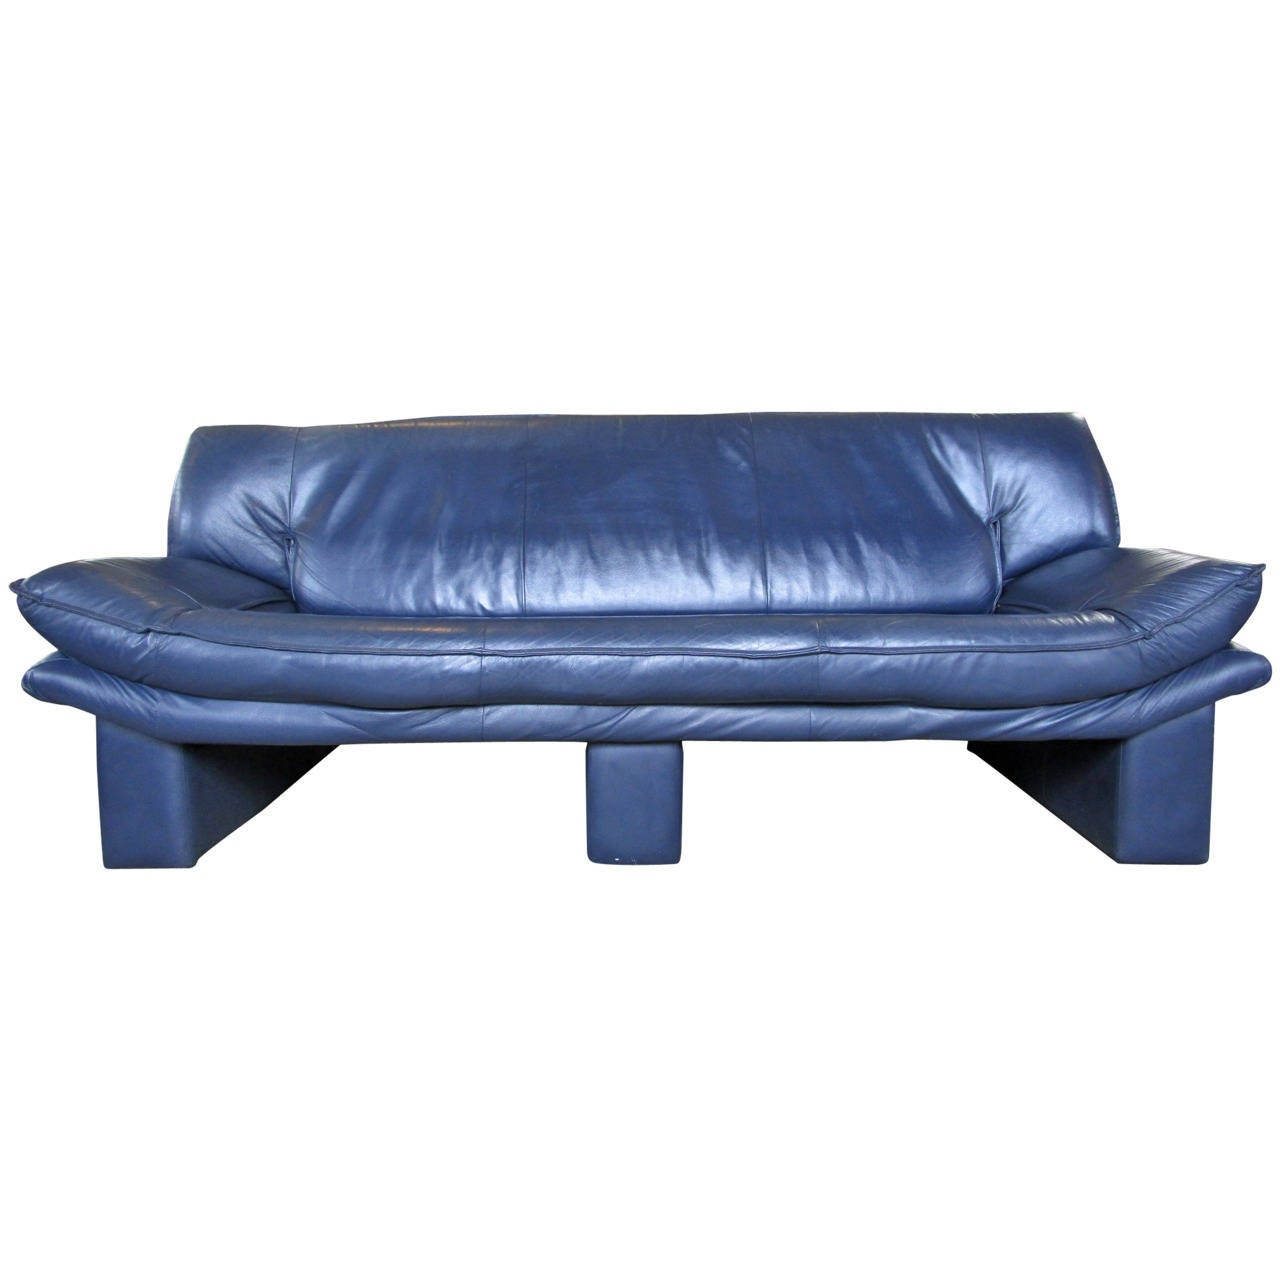 Navy blue leather sofa by nicoletti salotti at 1stdibs for Blue leather sofa